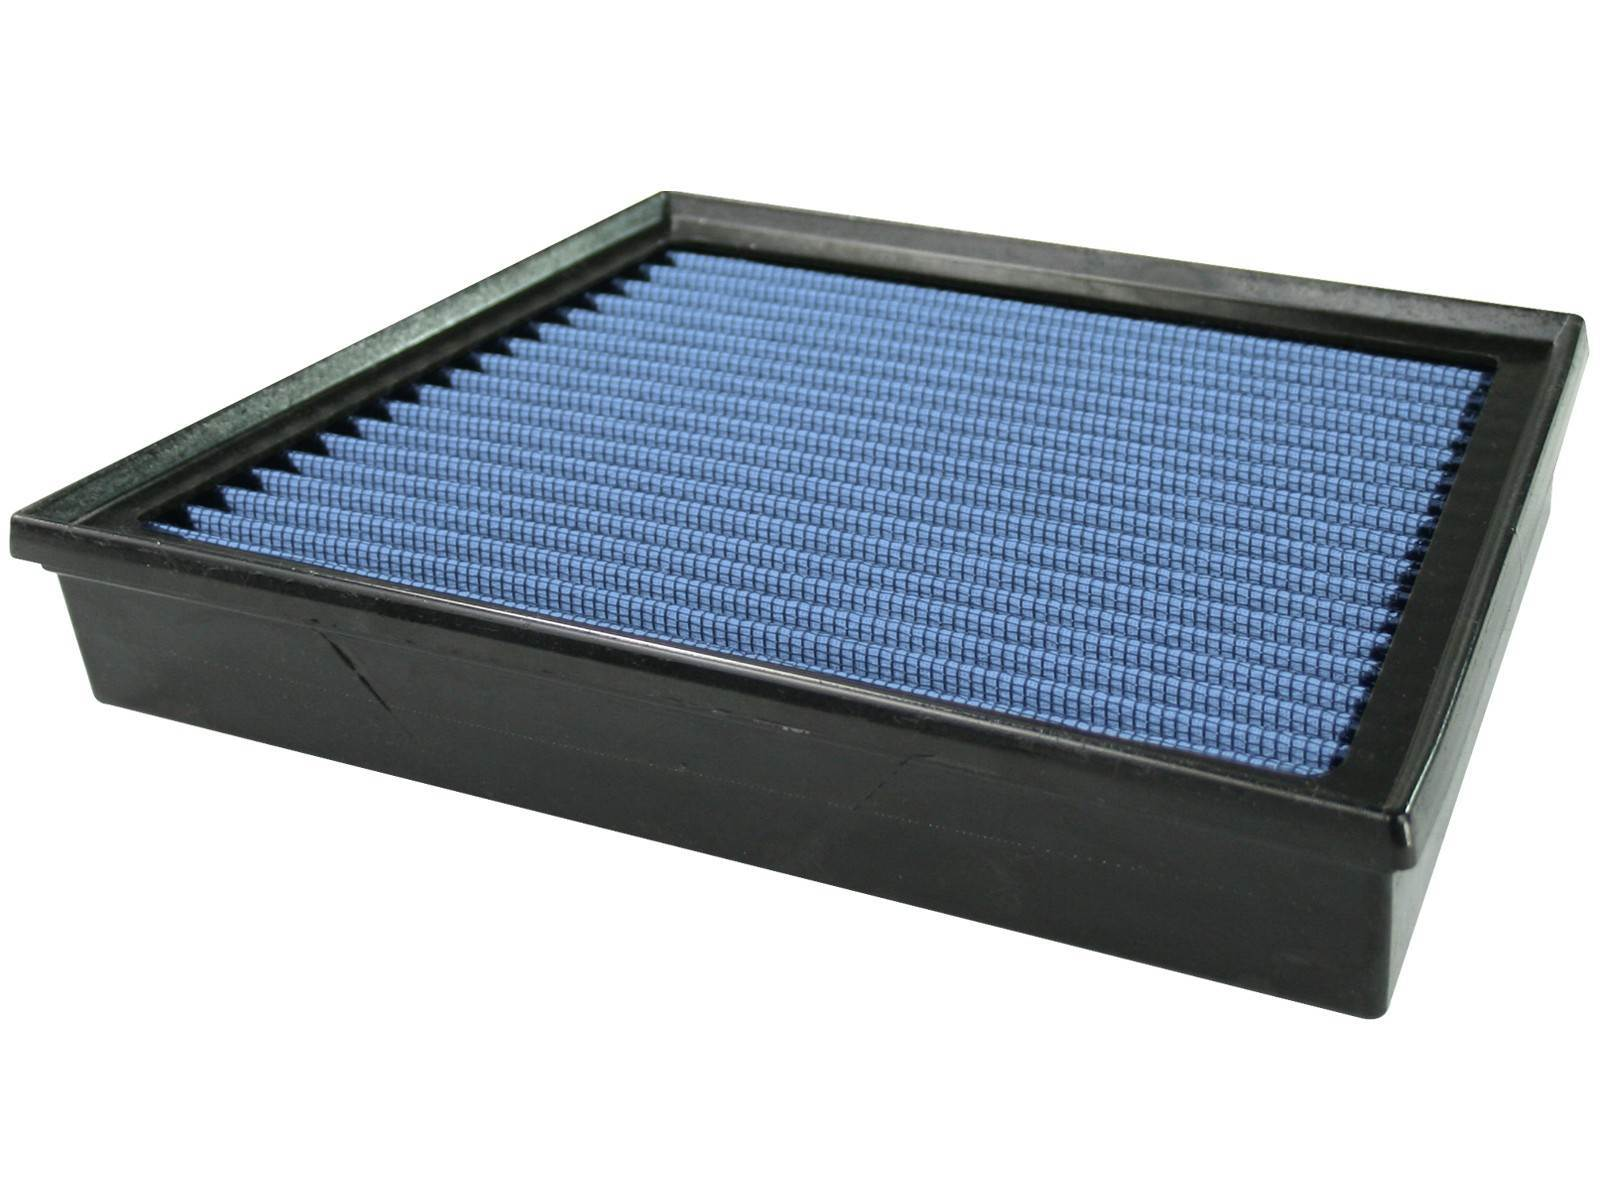 30-10209 - aFE Pro5R Performance Air filter for your 2011-2016 GMC/Chevy Duramax 6.6L LML